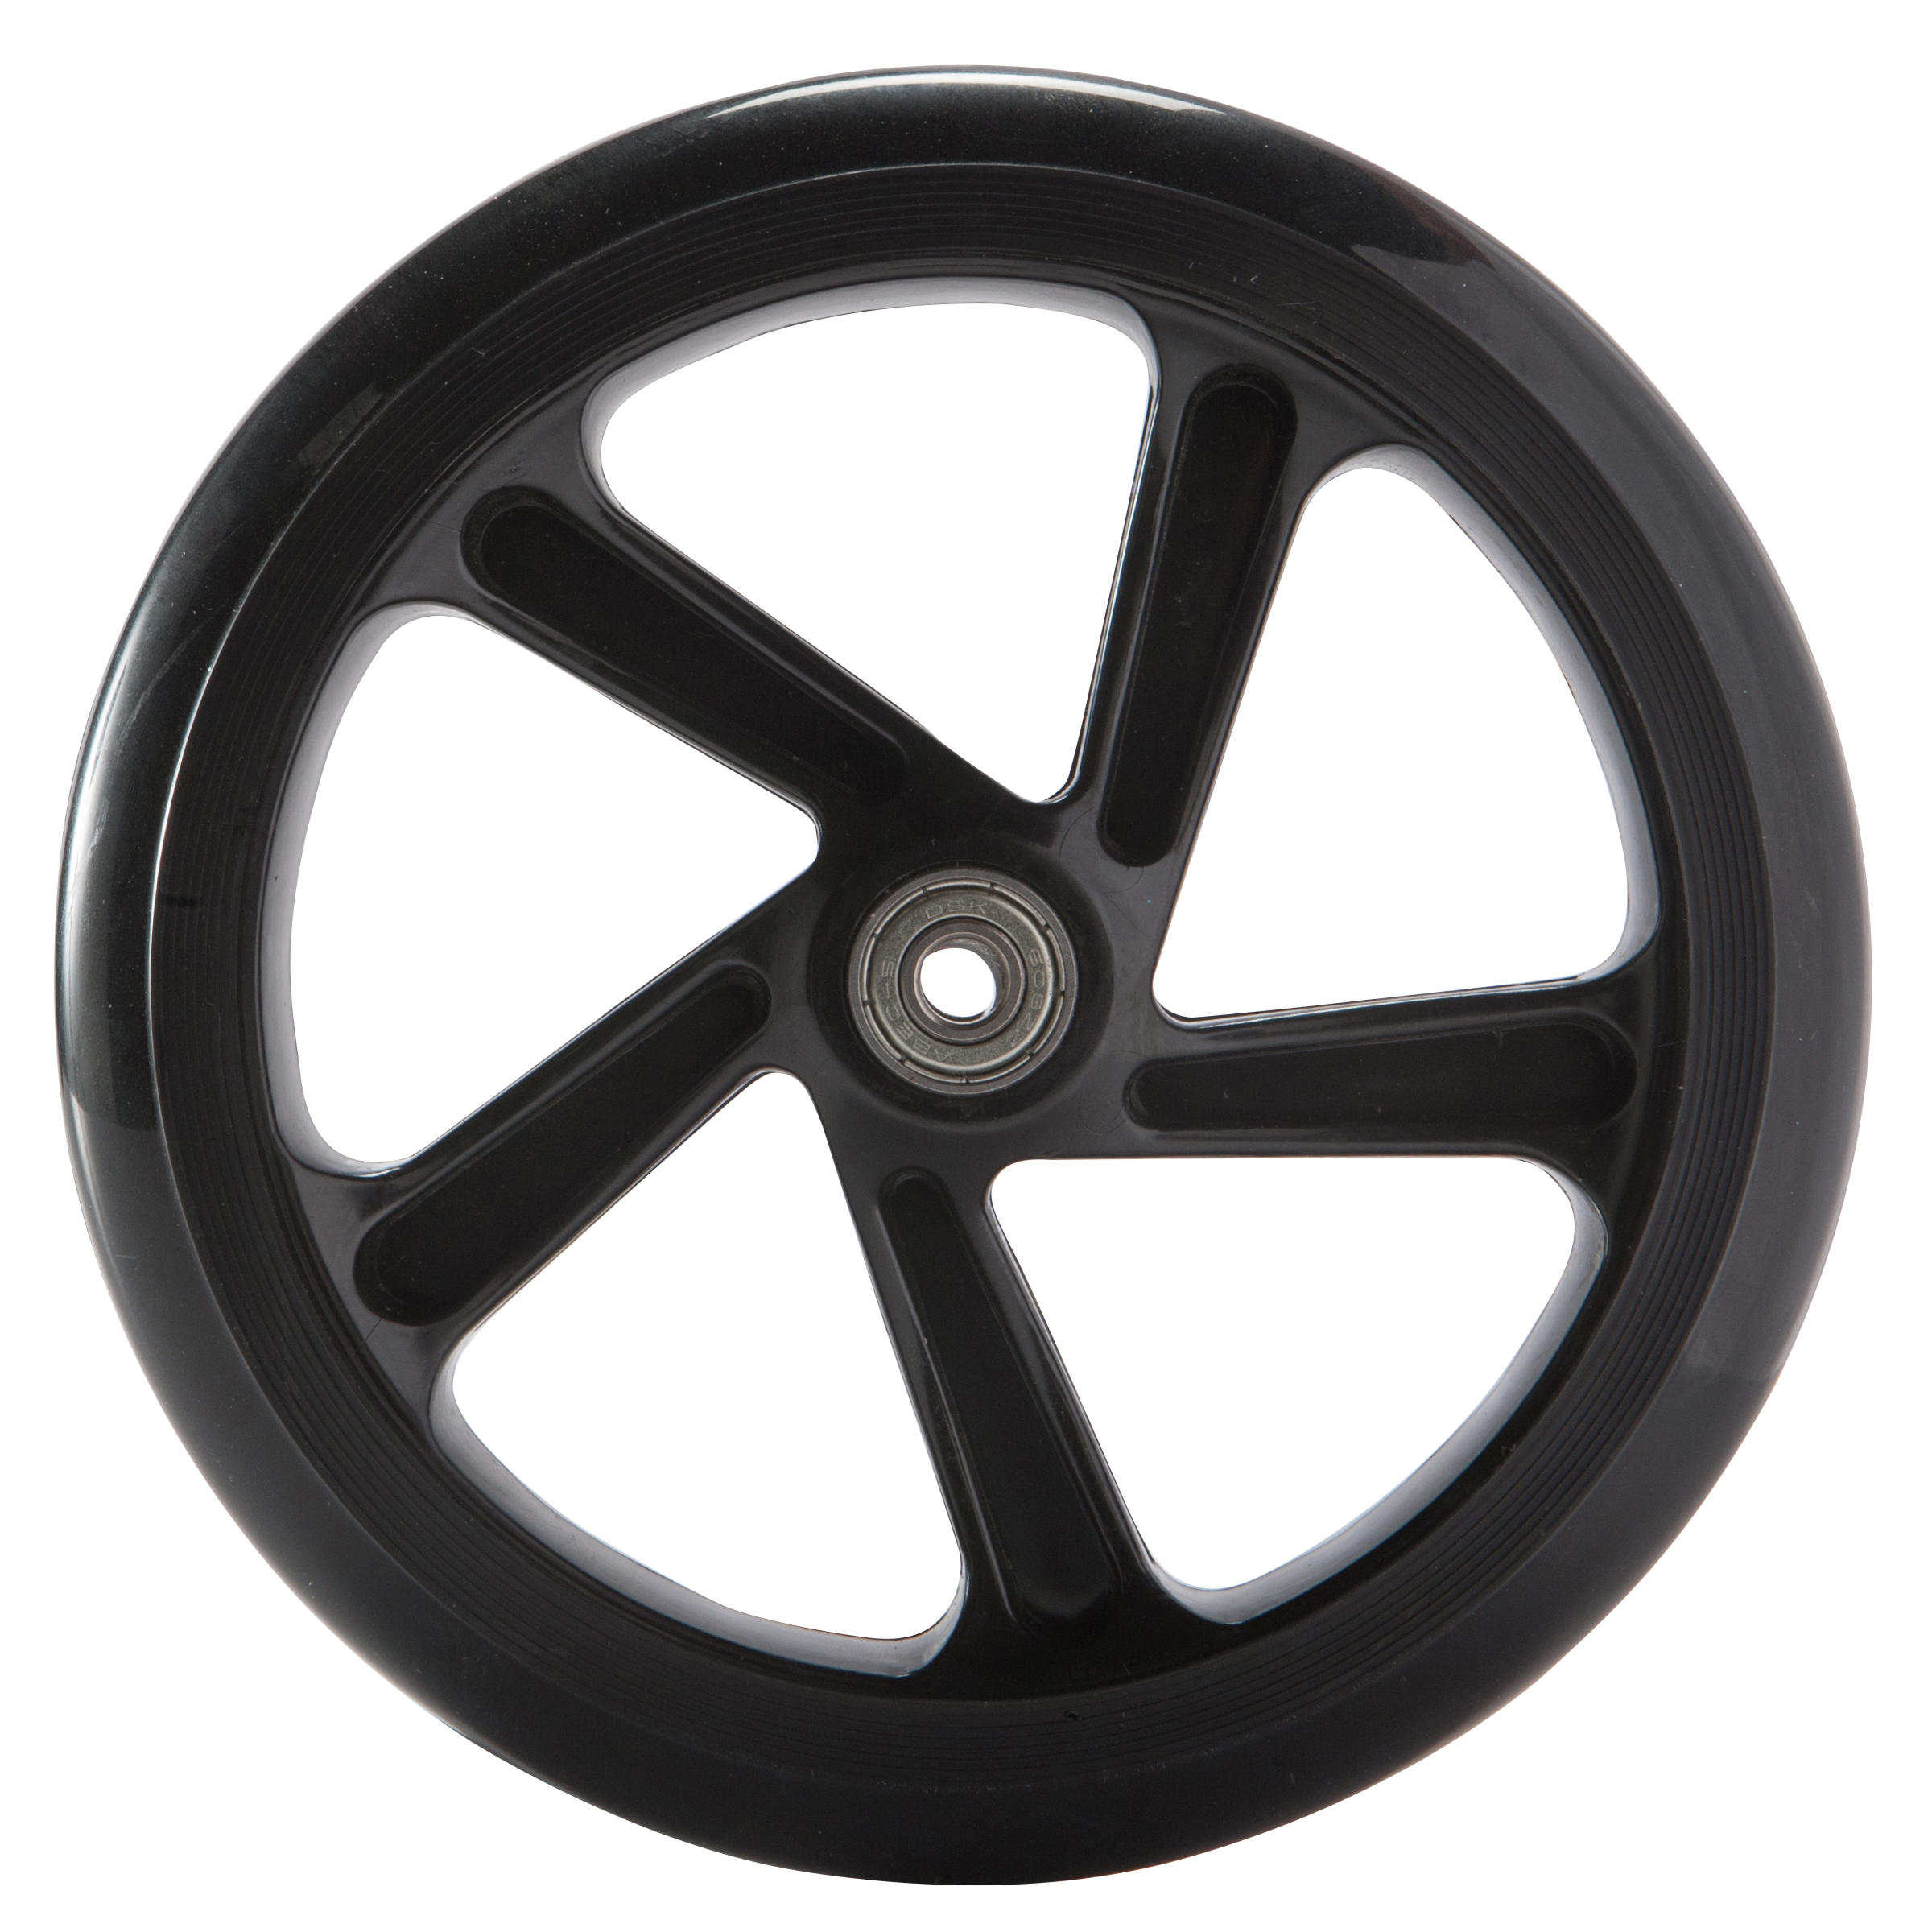 Mid 7/Town 3 Scooter Wheel 175mm